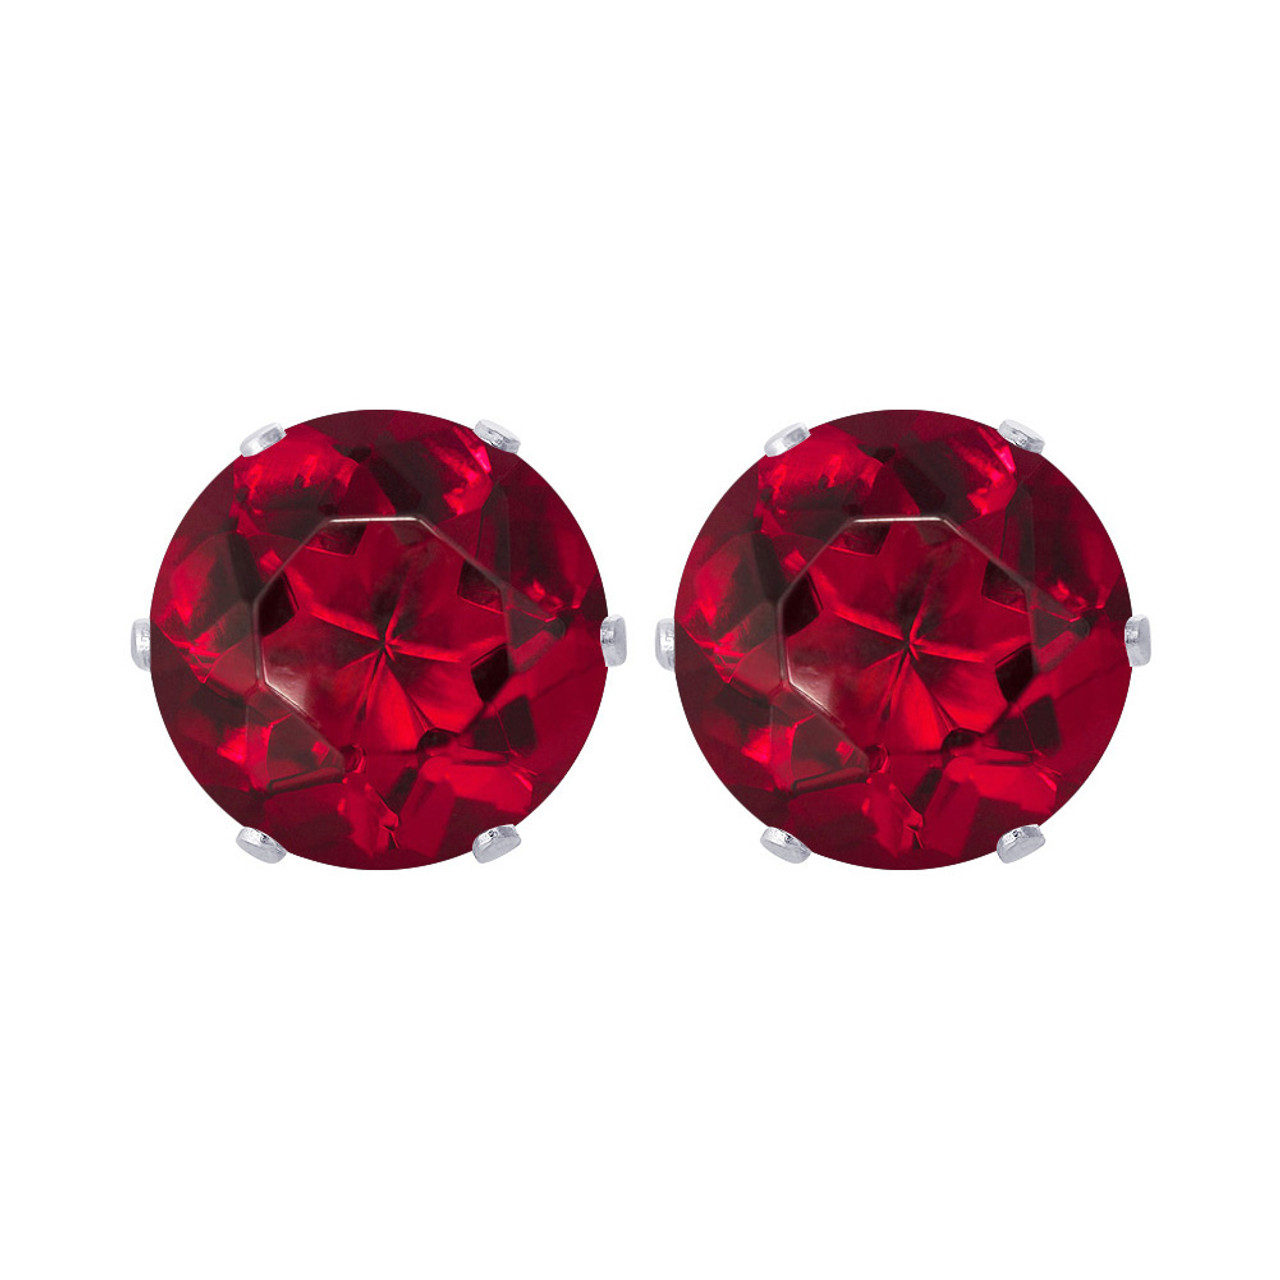 6mm Round Garnet Color January Birthstone Stud Earrings